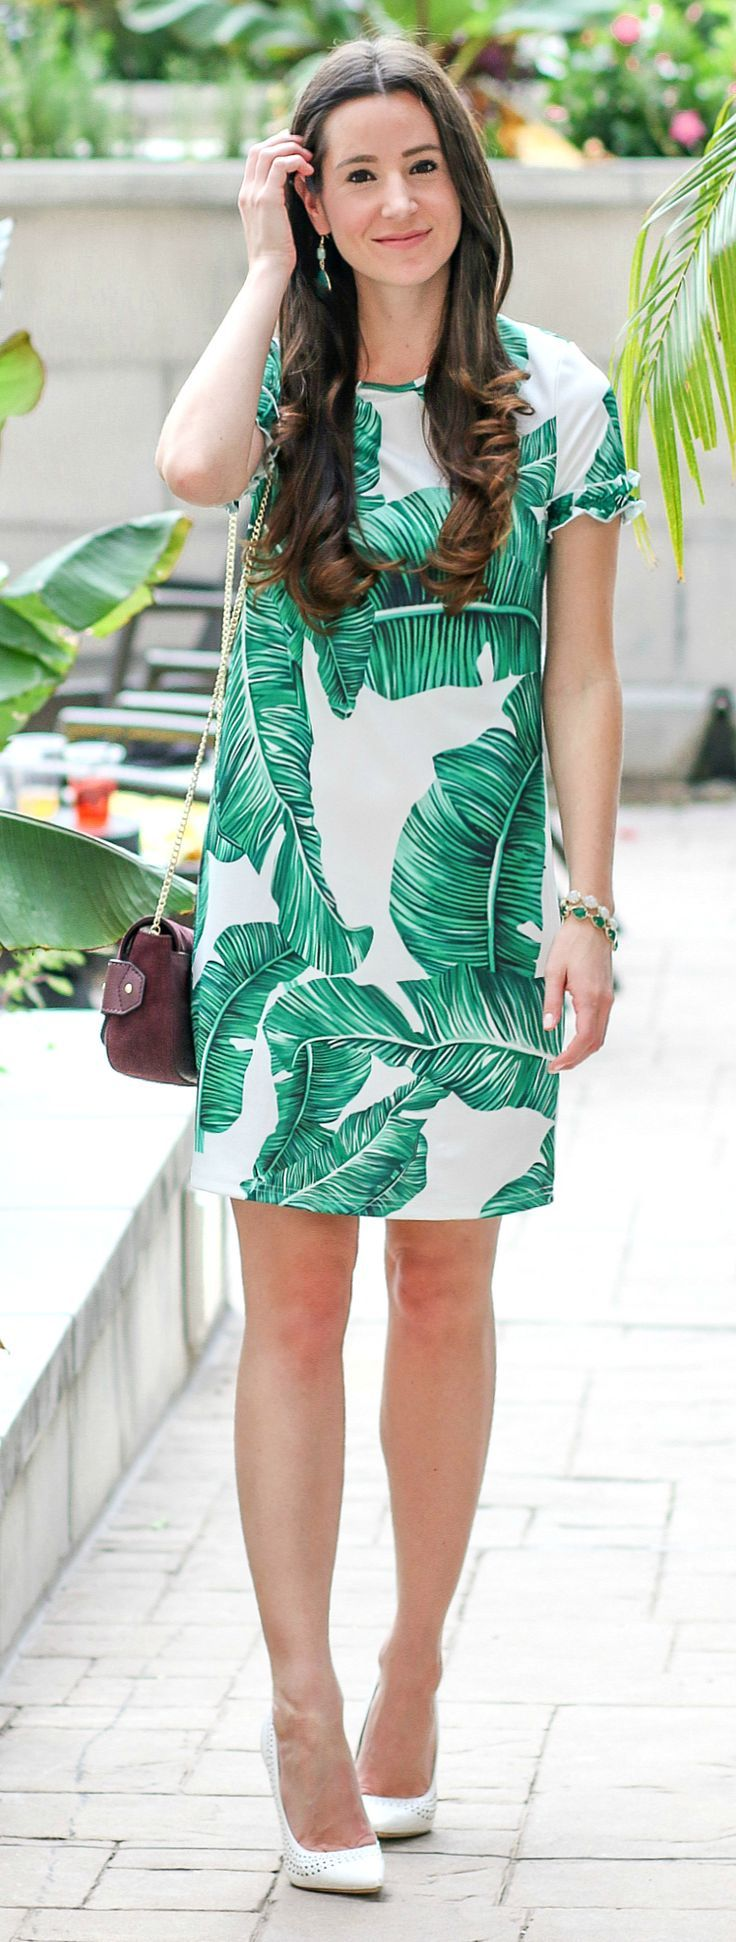 Palm Print Shift Dress with white pumps, Vera Bradley Carson Mini Saddle Bag in Sycamore Bittersweet Chocolate, green and white drusy Kendra Scott Brynn bracelets, and green gemstone drop earrings-- affordable vacation outfit idea | Italian Girl Problems: How to Add Volume to Second Day Hair by blogger Stephanie Ziajka from Diary of a Debutante